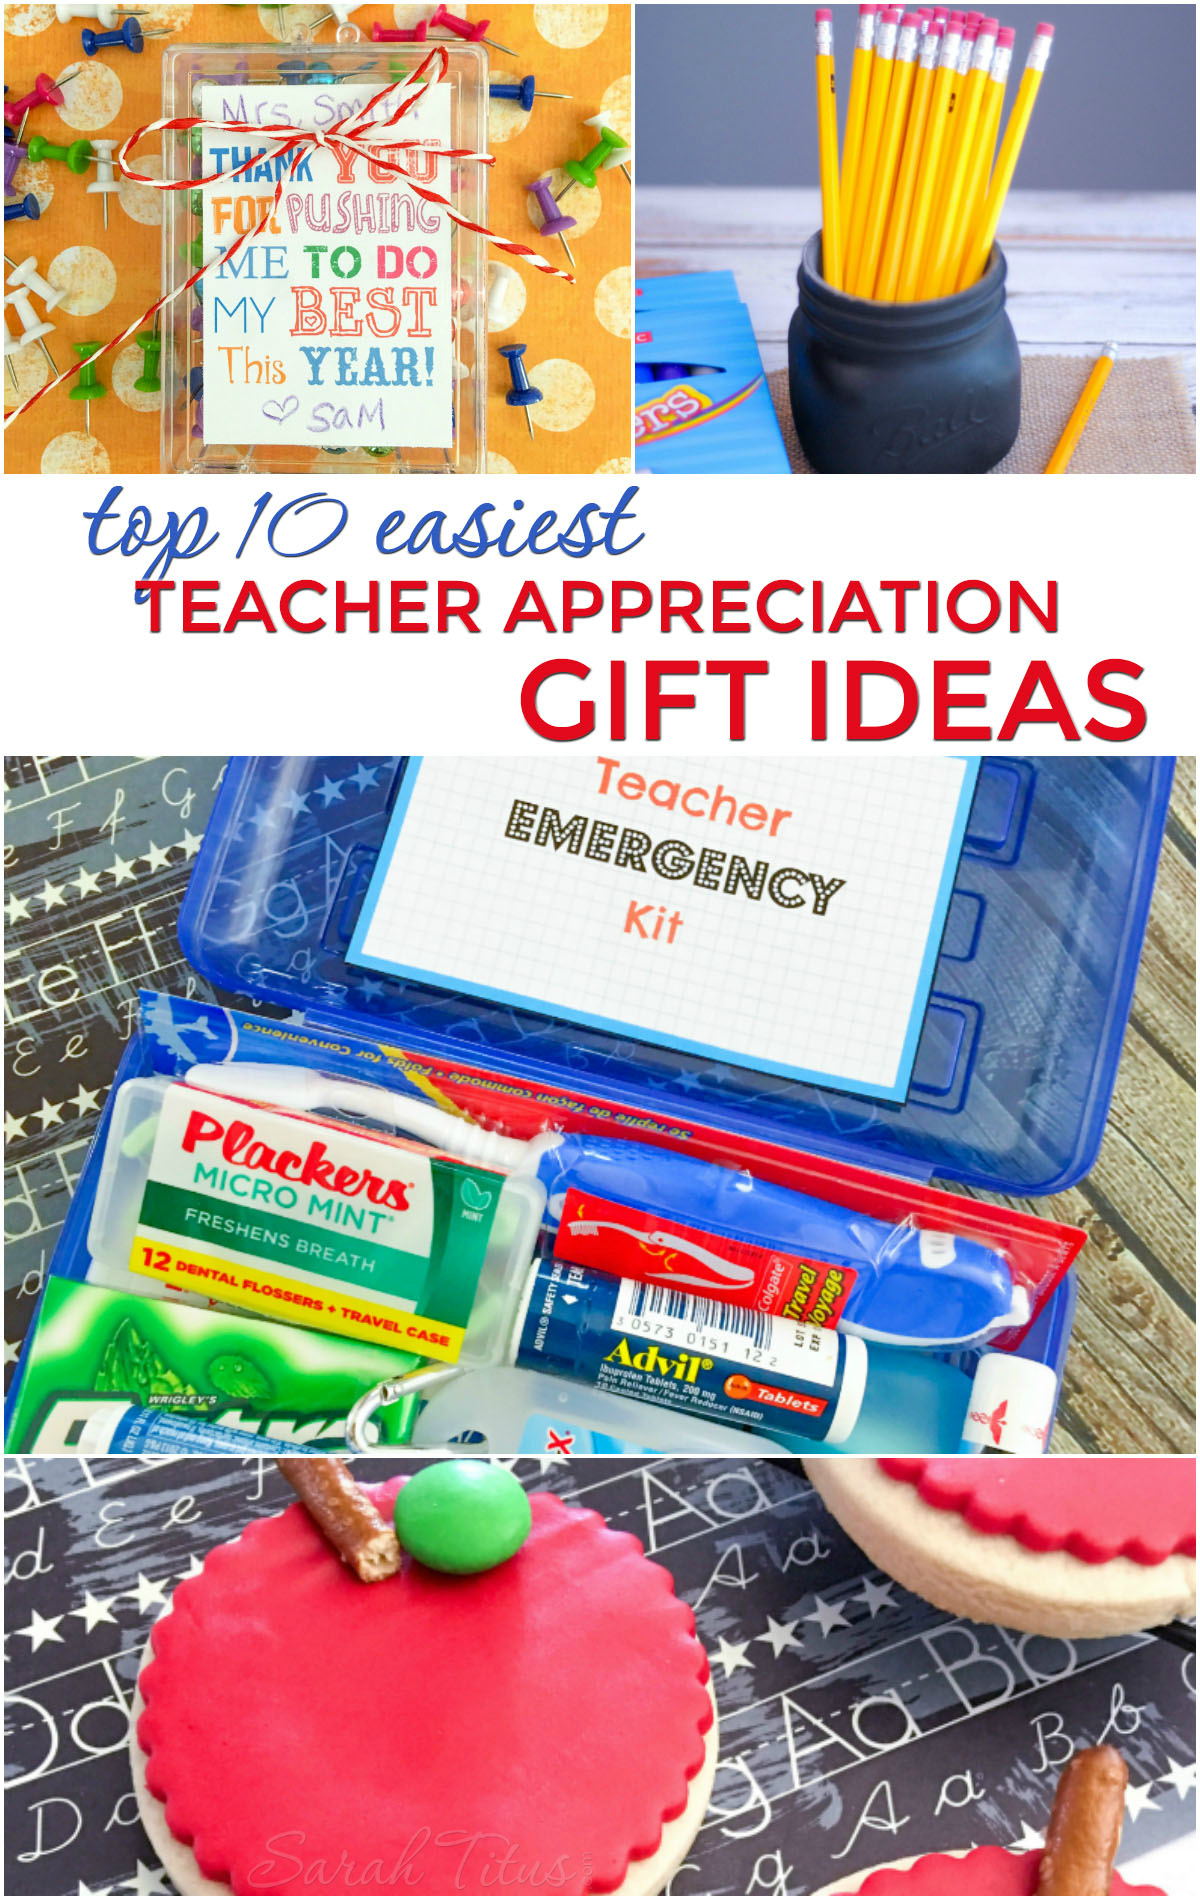 Whether they are heading off to school or just letting out for the summer, these easiest teacher appreciation gift ideas are perfect for the occasion.